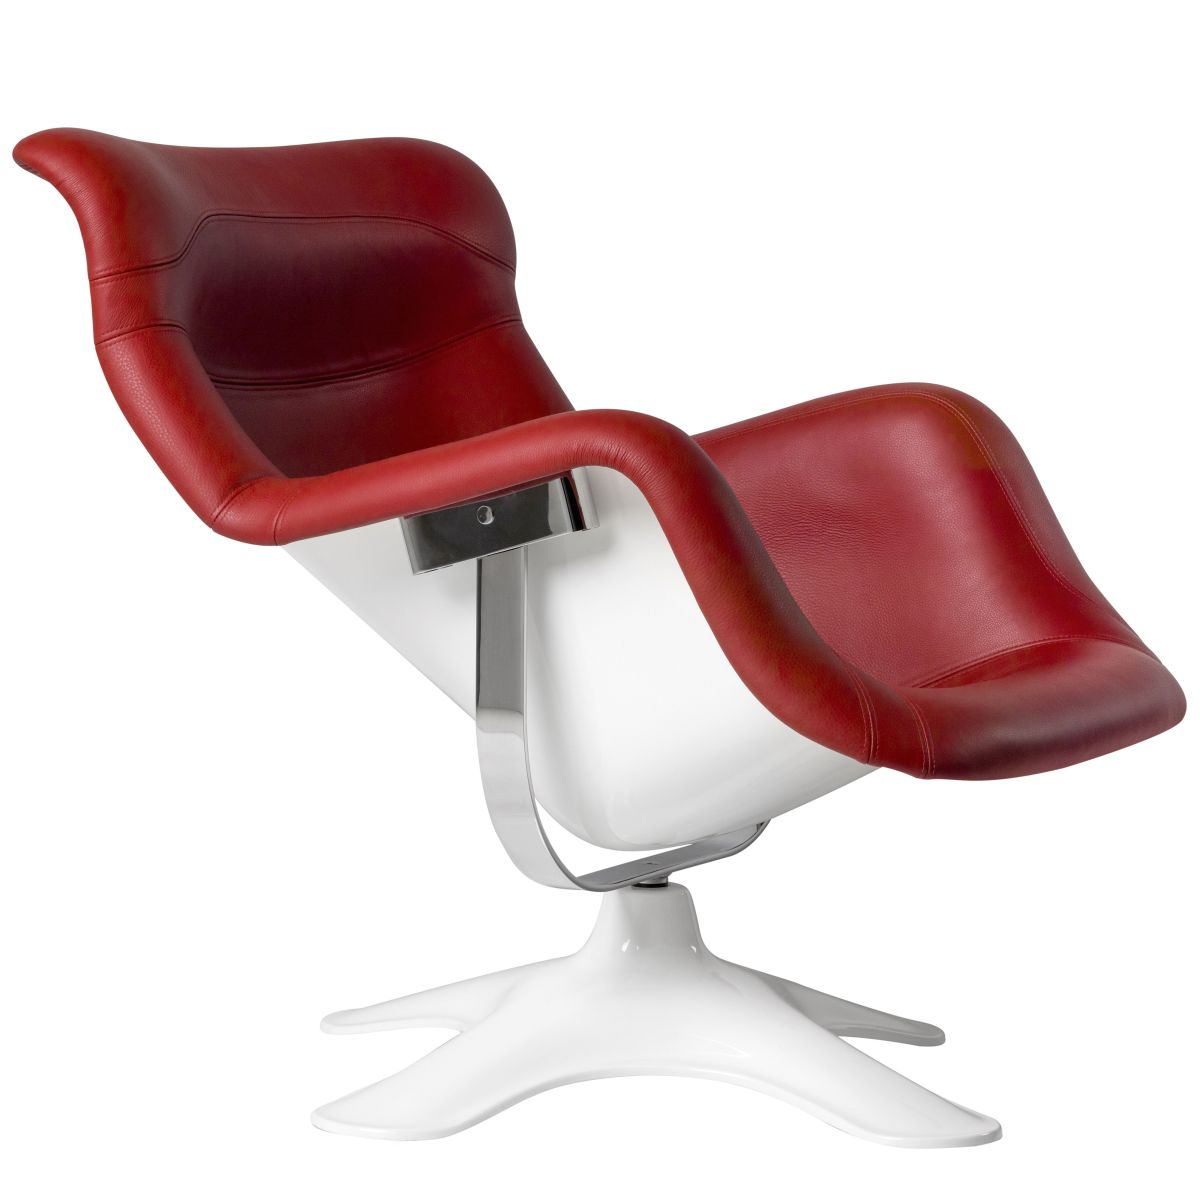 Karuselli-Lounge-Chair-Red-Leather